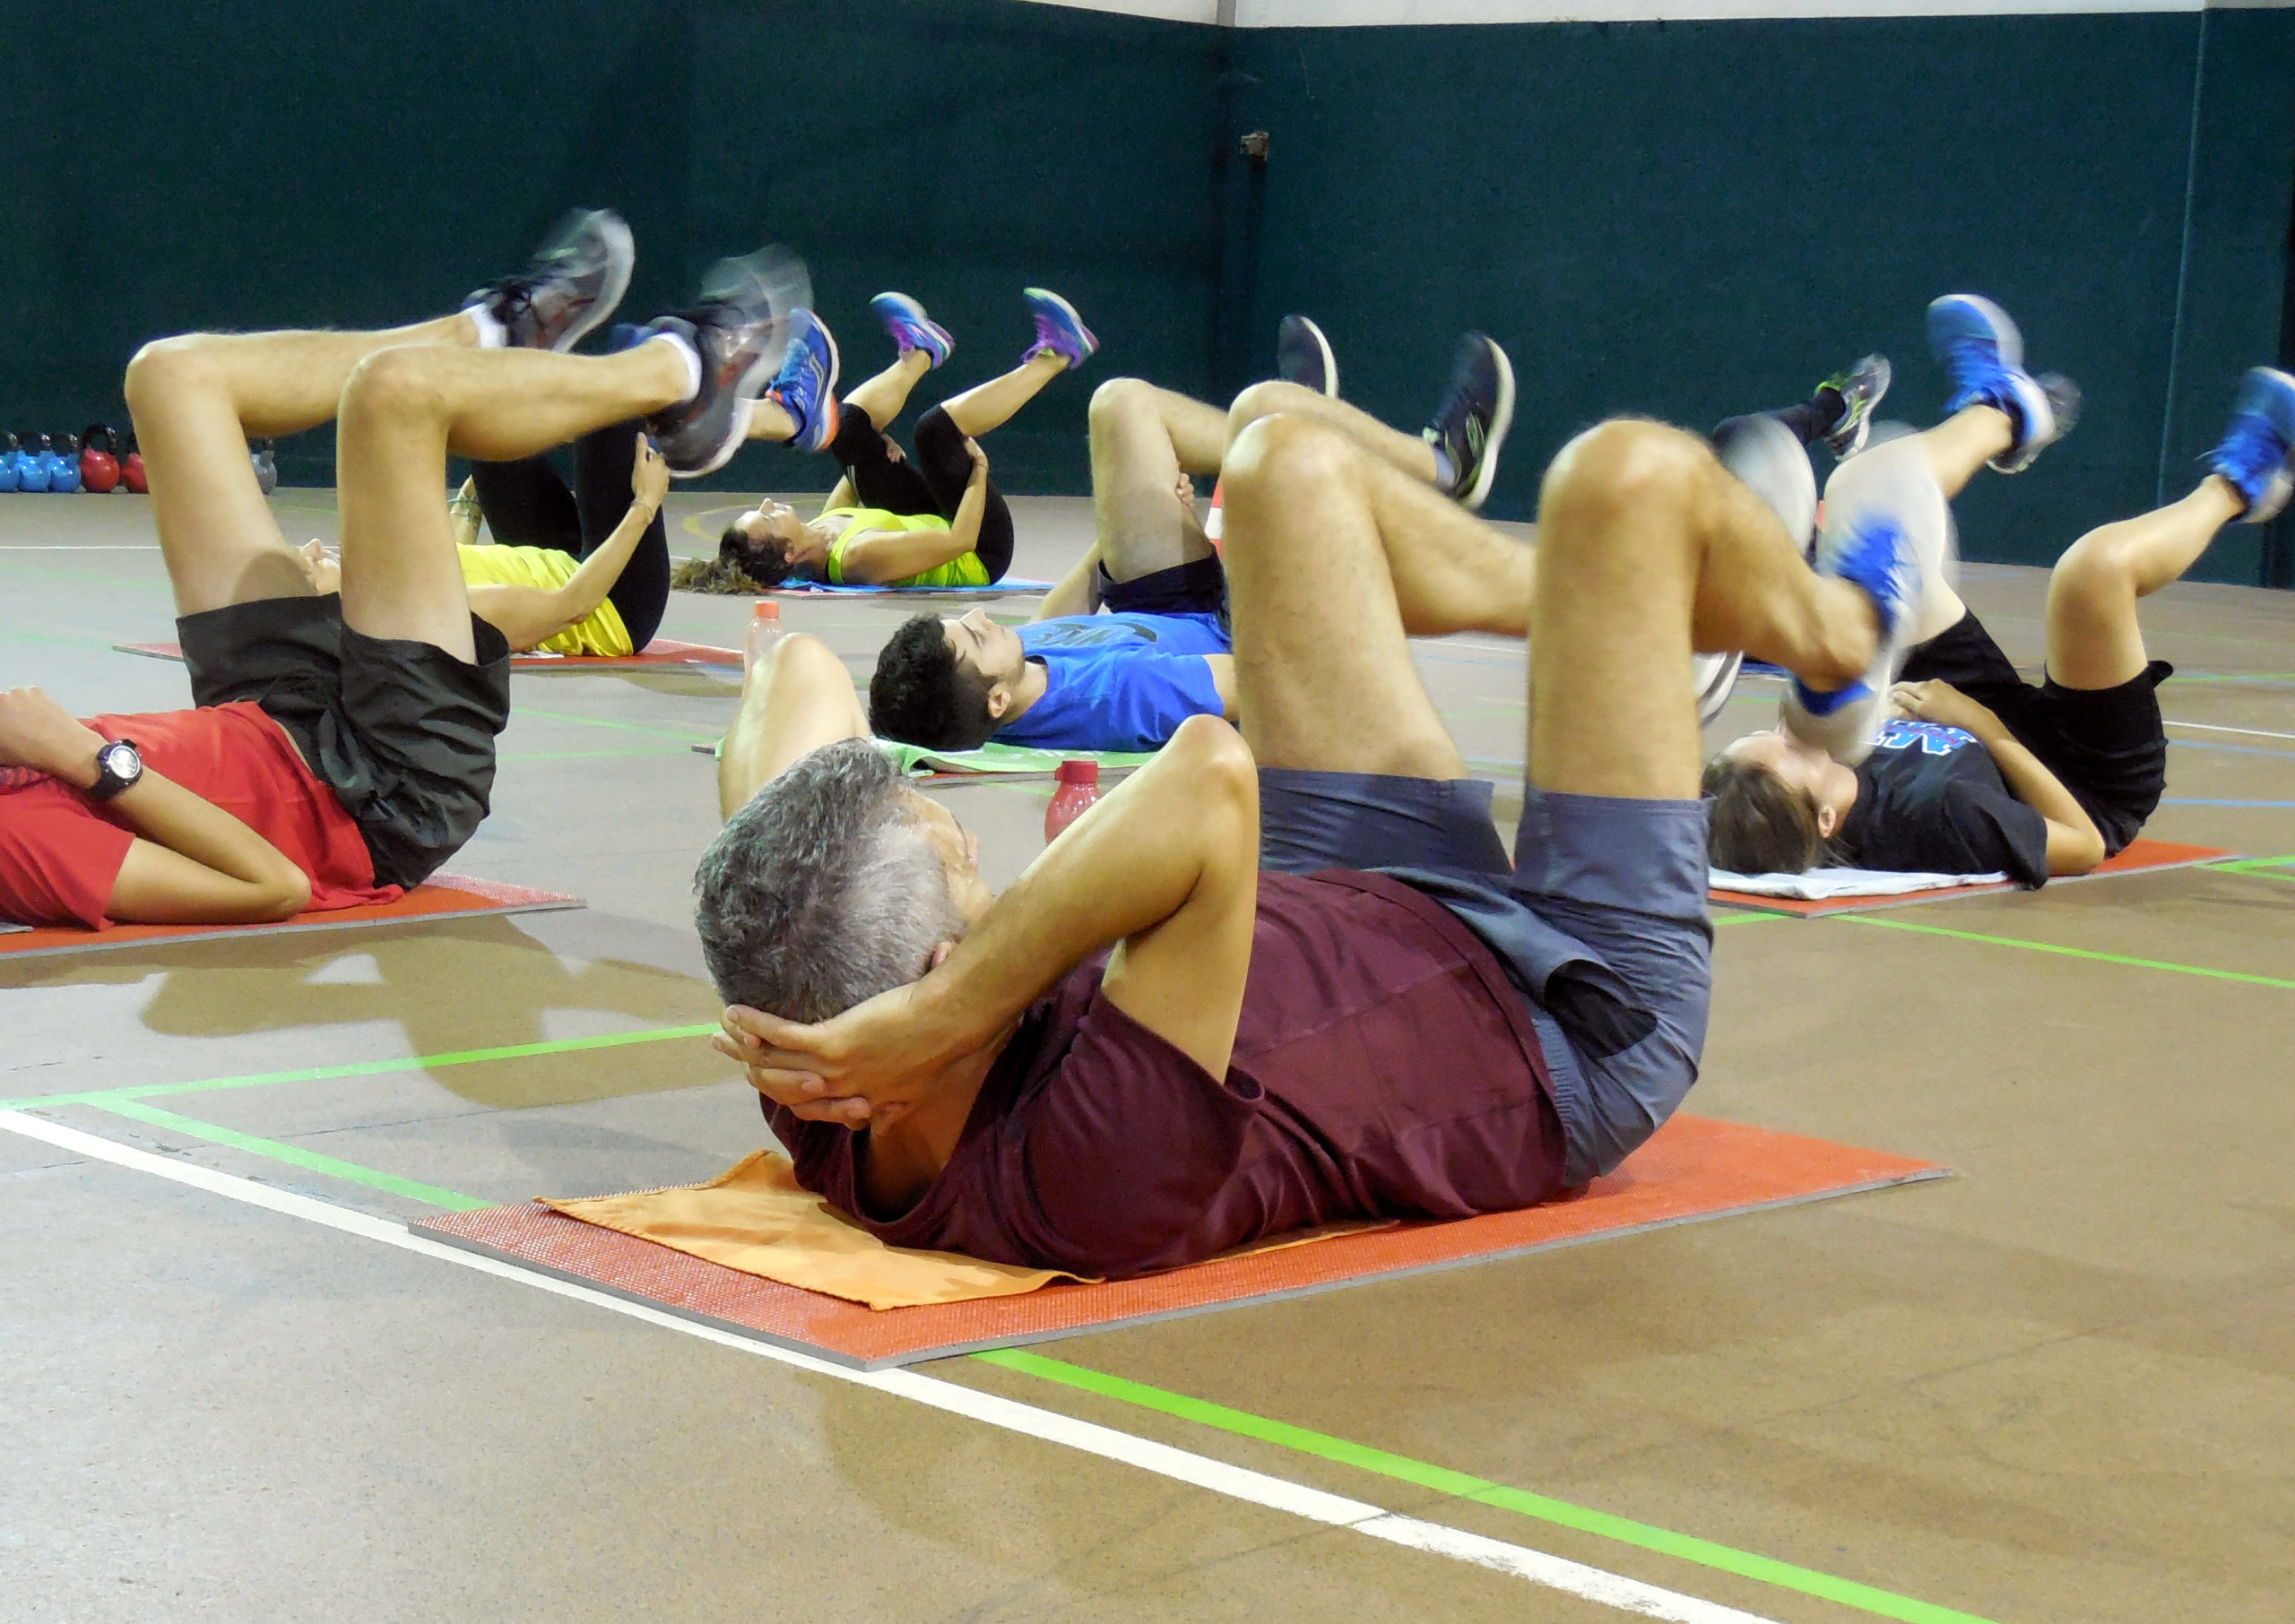 Total Body in palestra a Trento | Prosport a.s.d. Trento